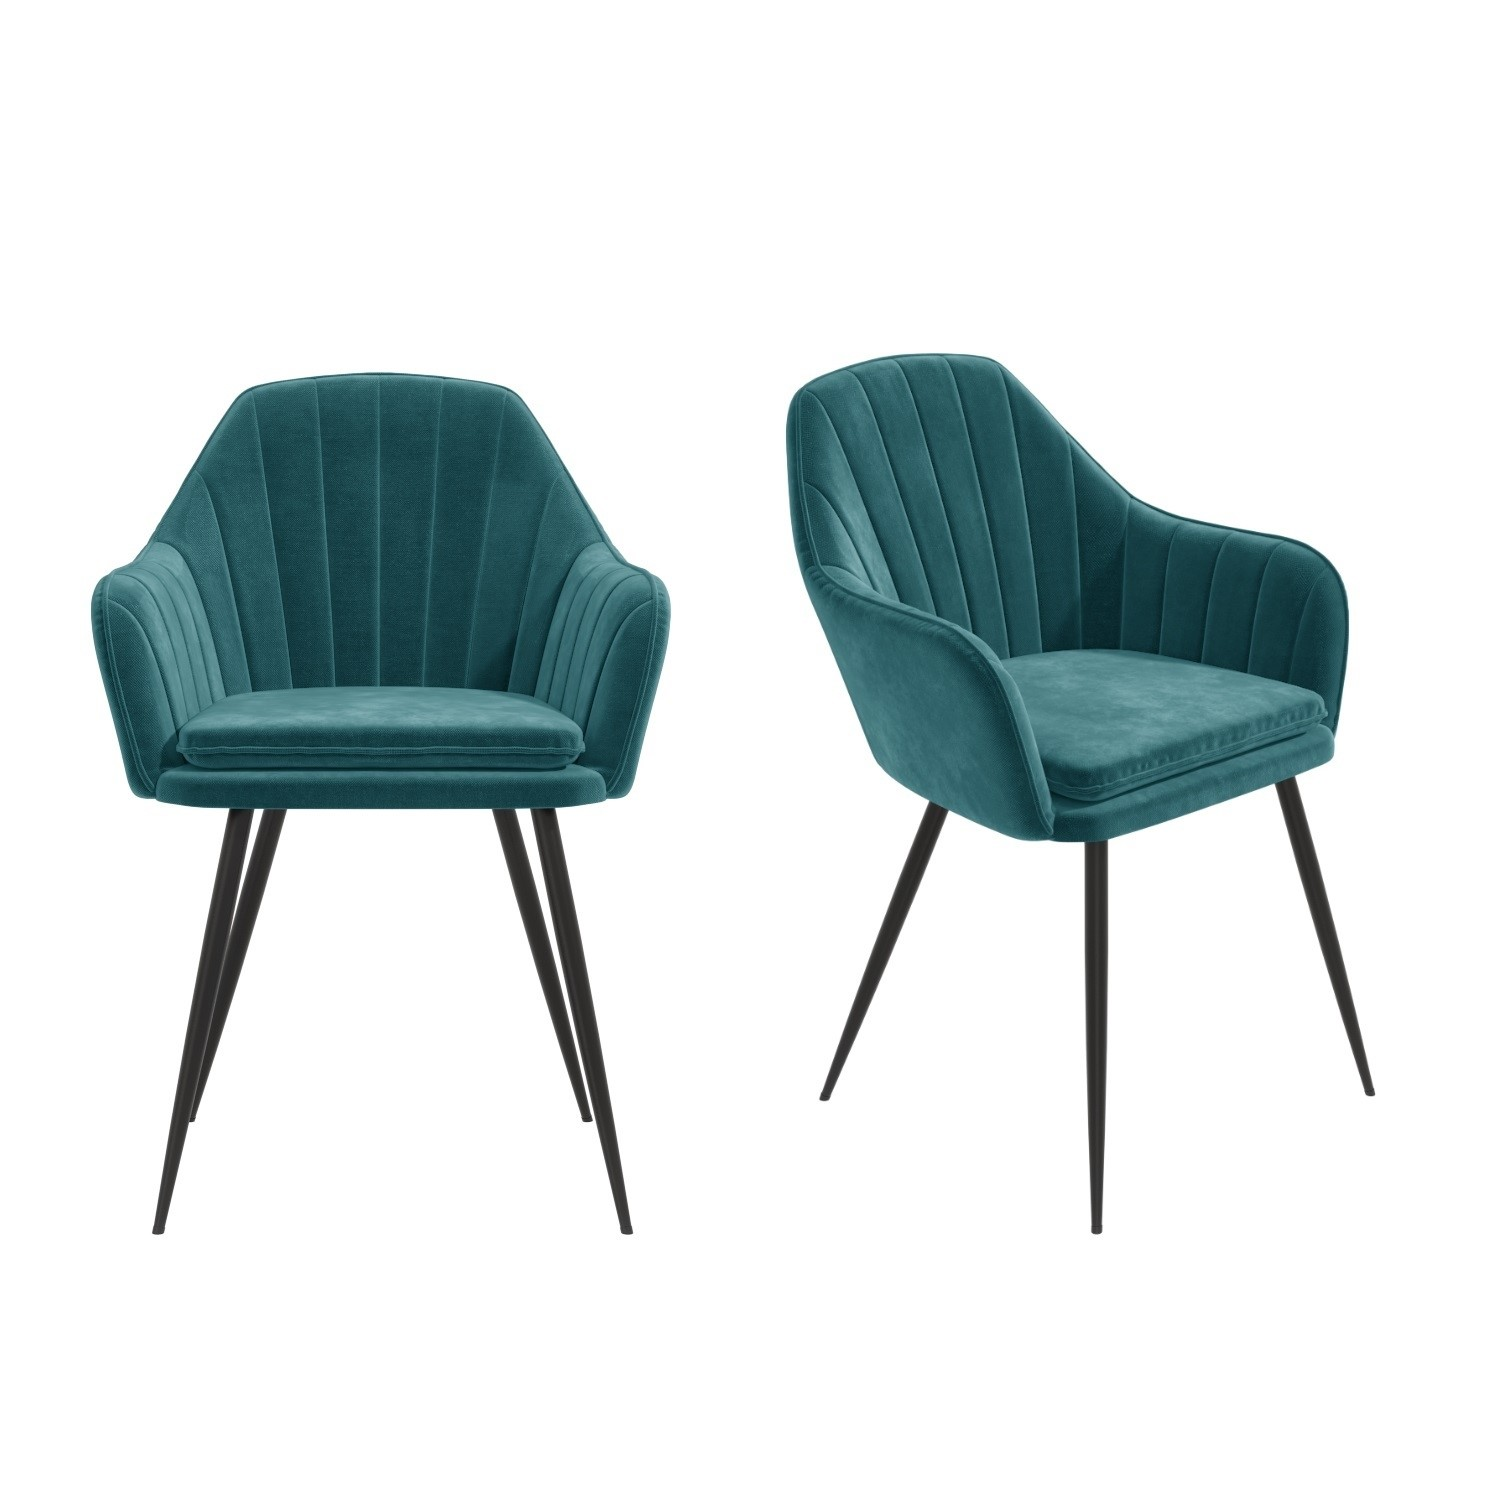 Set Of 2 Teal Blue Velvet Dining Tub Chairs With Black Legs Logan Furniture123